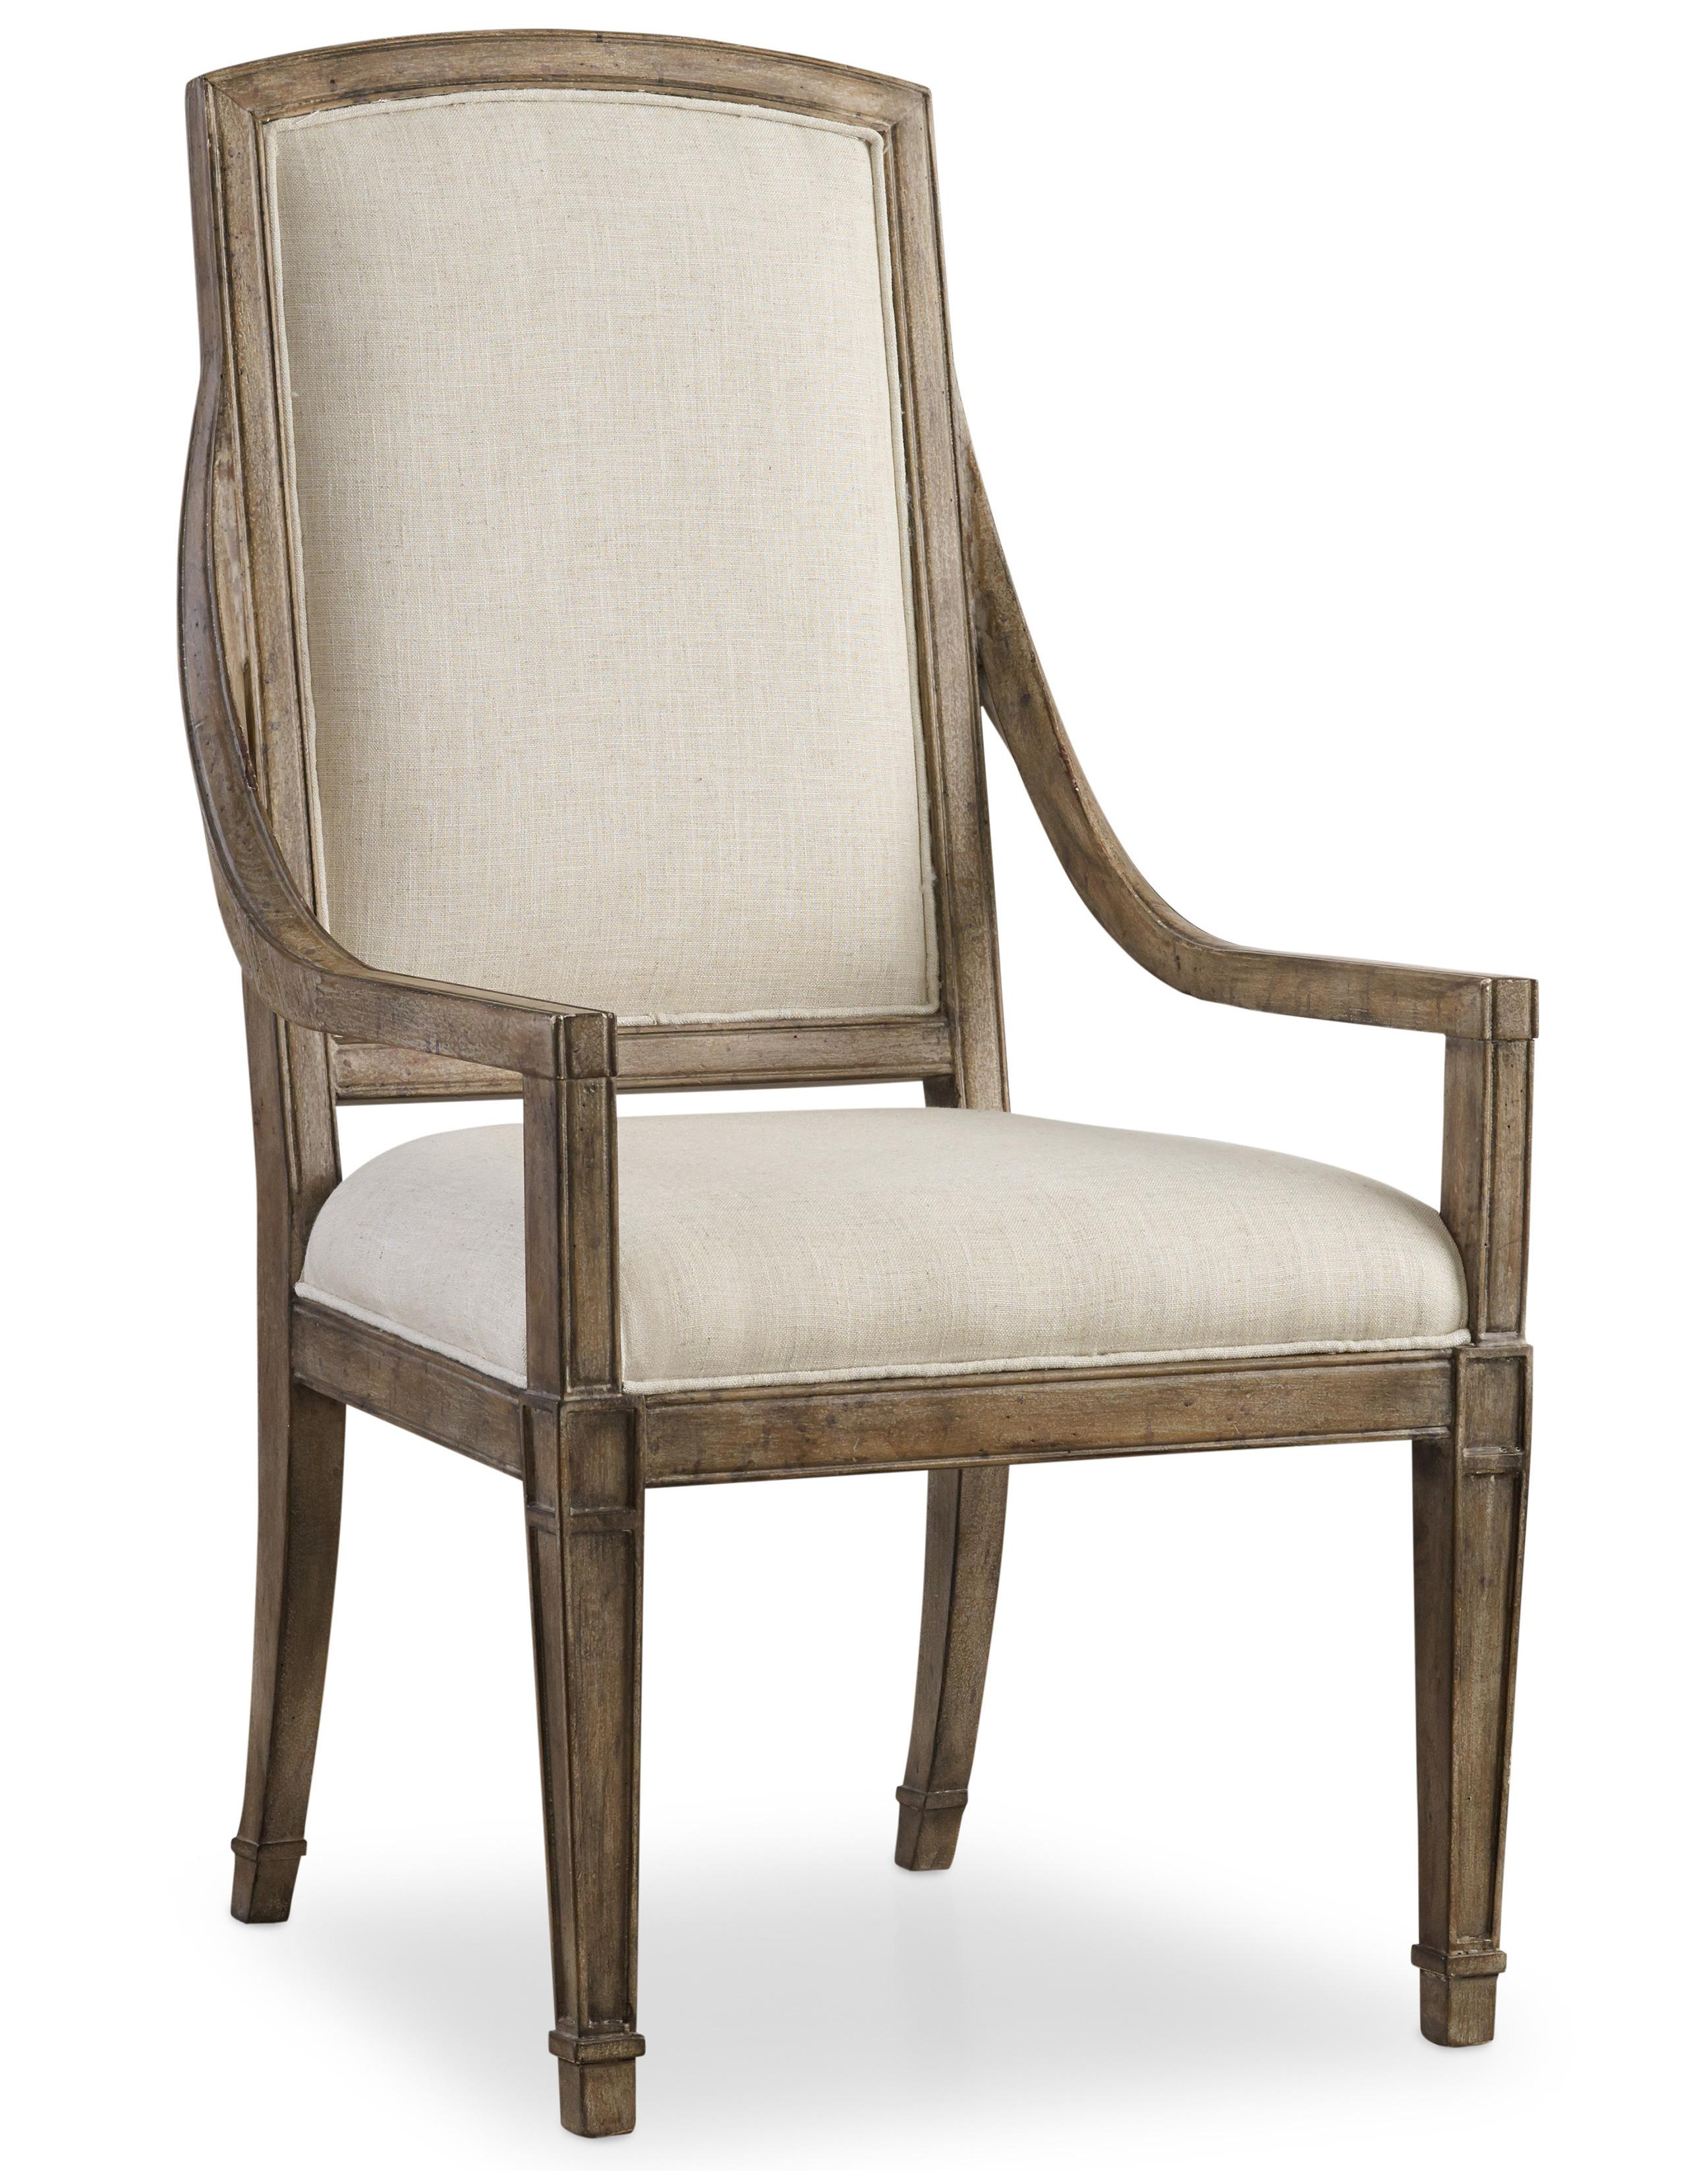 Hooker Furniture Solana Host Chair - Item Number: 5291-75501